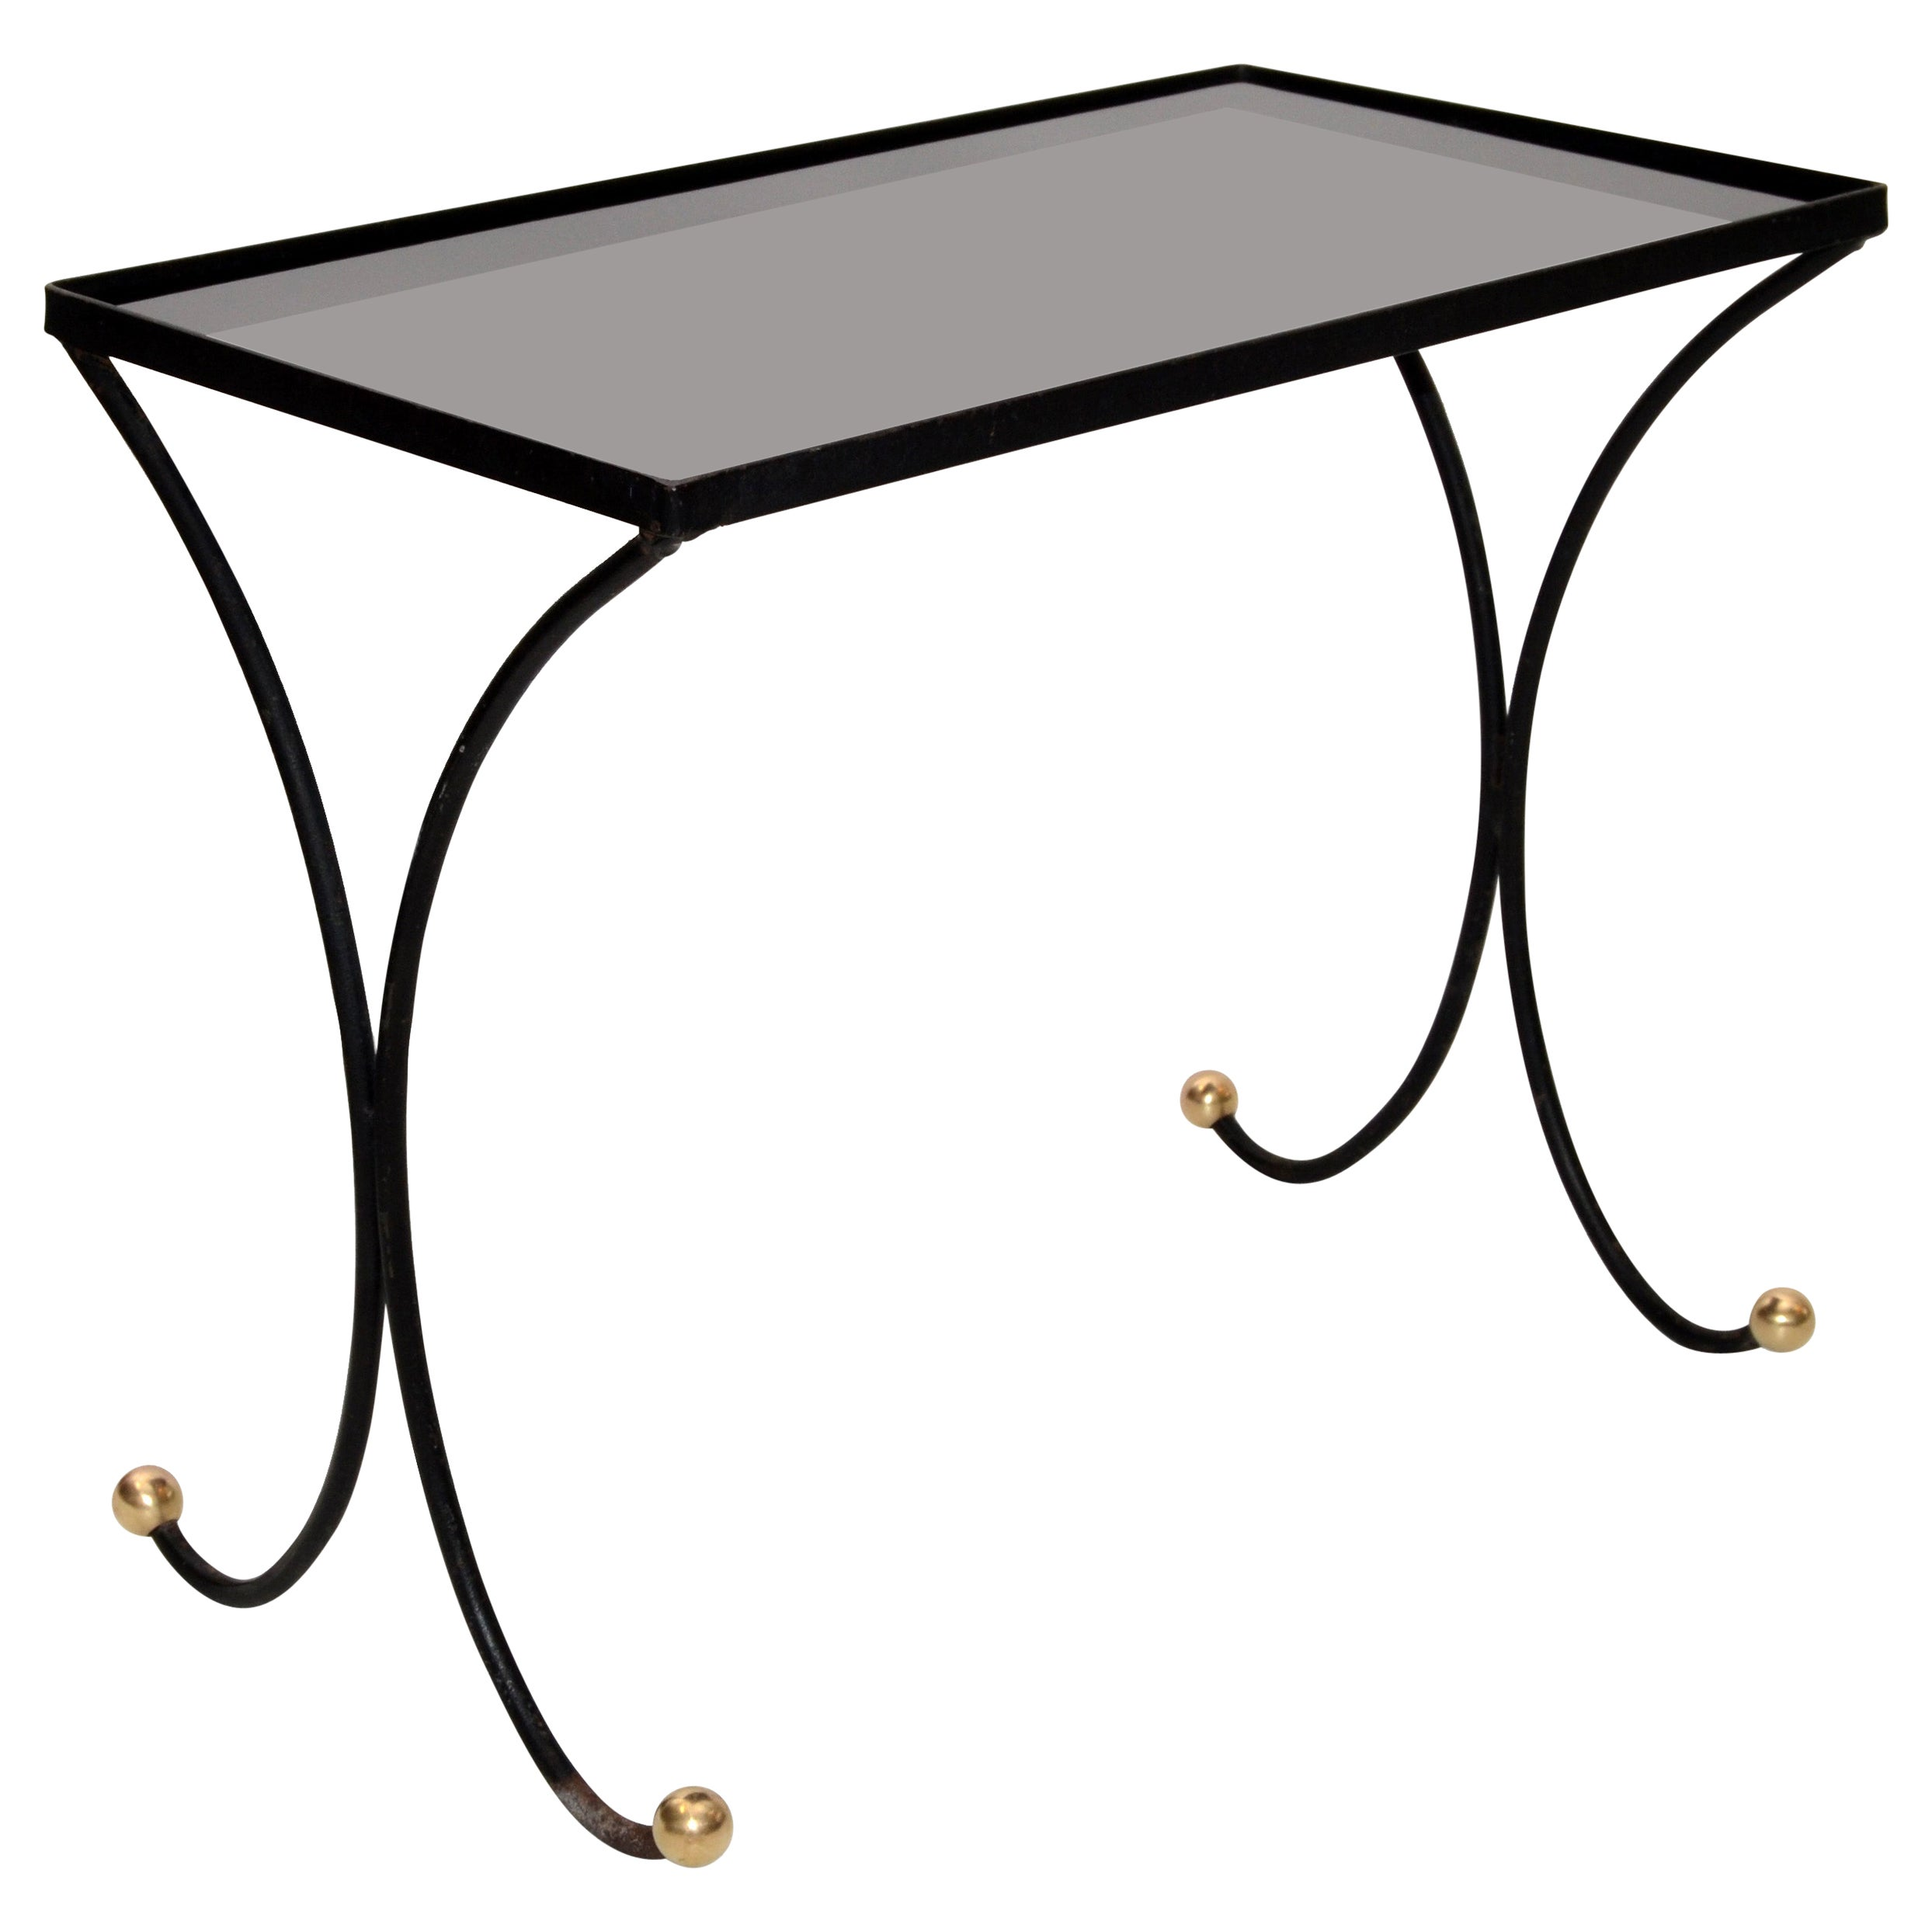 French Mid-Century Modern Black Wrought Iron & Brass Side Table Black Glass Top